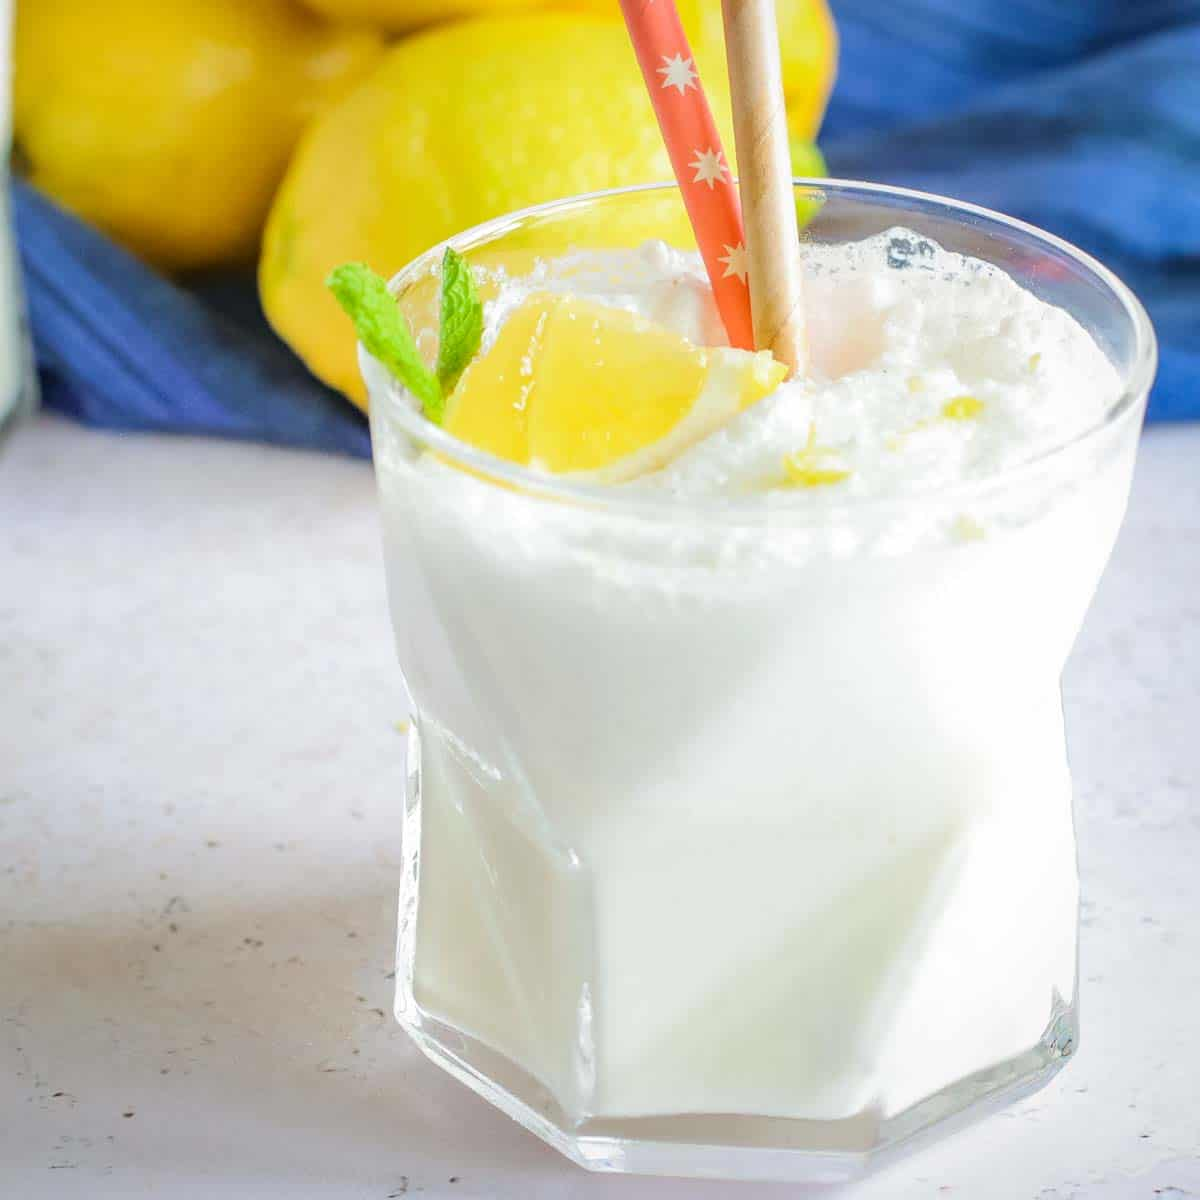 Close up side shot of a chick fil a frozen lemonade in a clear glass with two straws and a lemon and mint as a garnish with a blue cloth and lemons in the background.